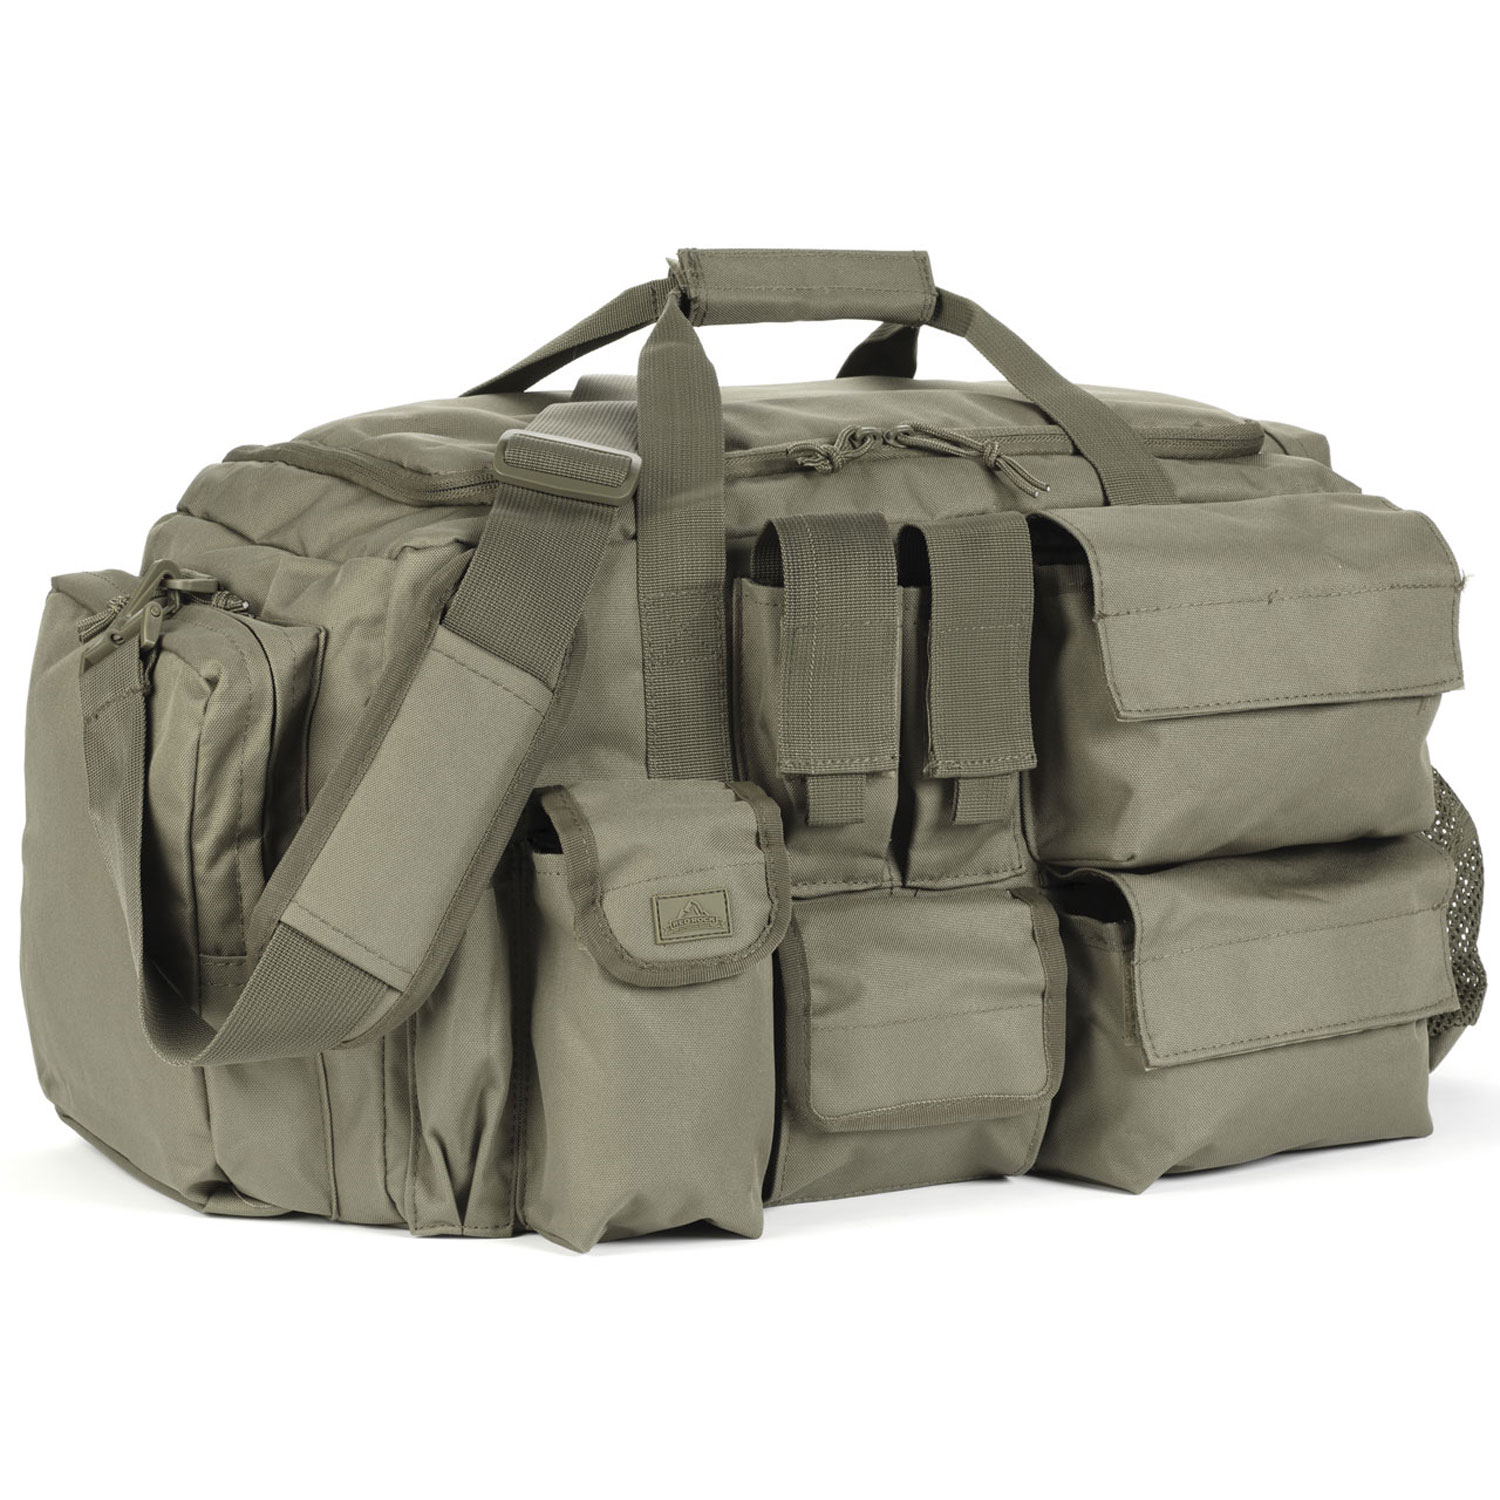 Red Rock Outdoor Gear 80261od Operations Hunting Duffle Bag Olive Drab